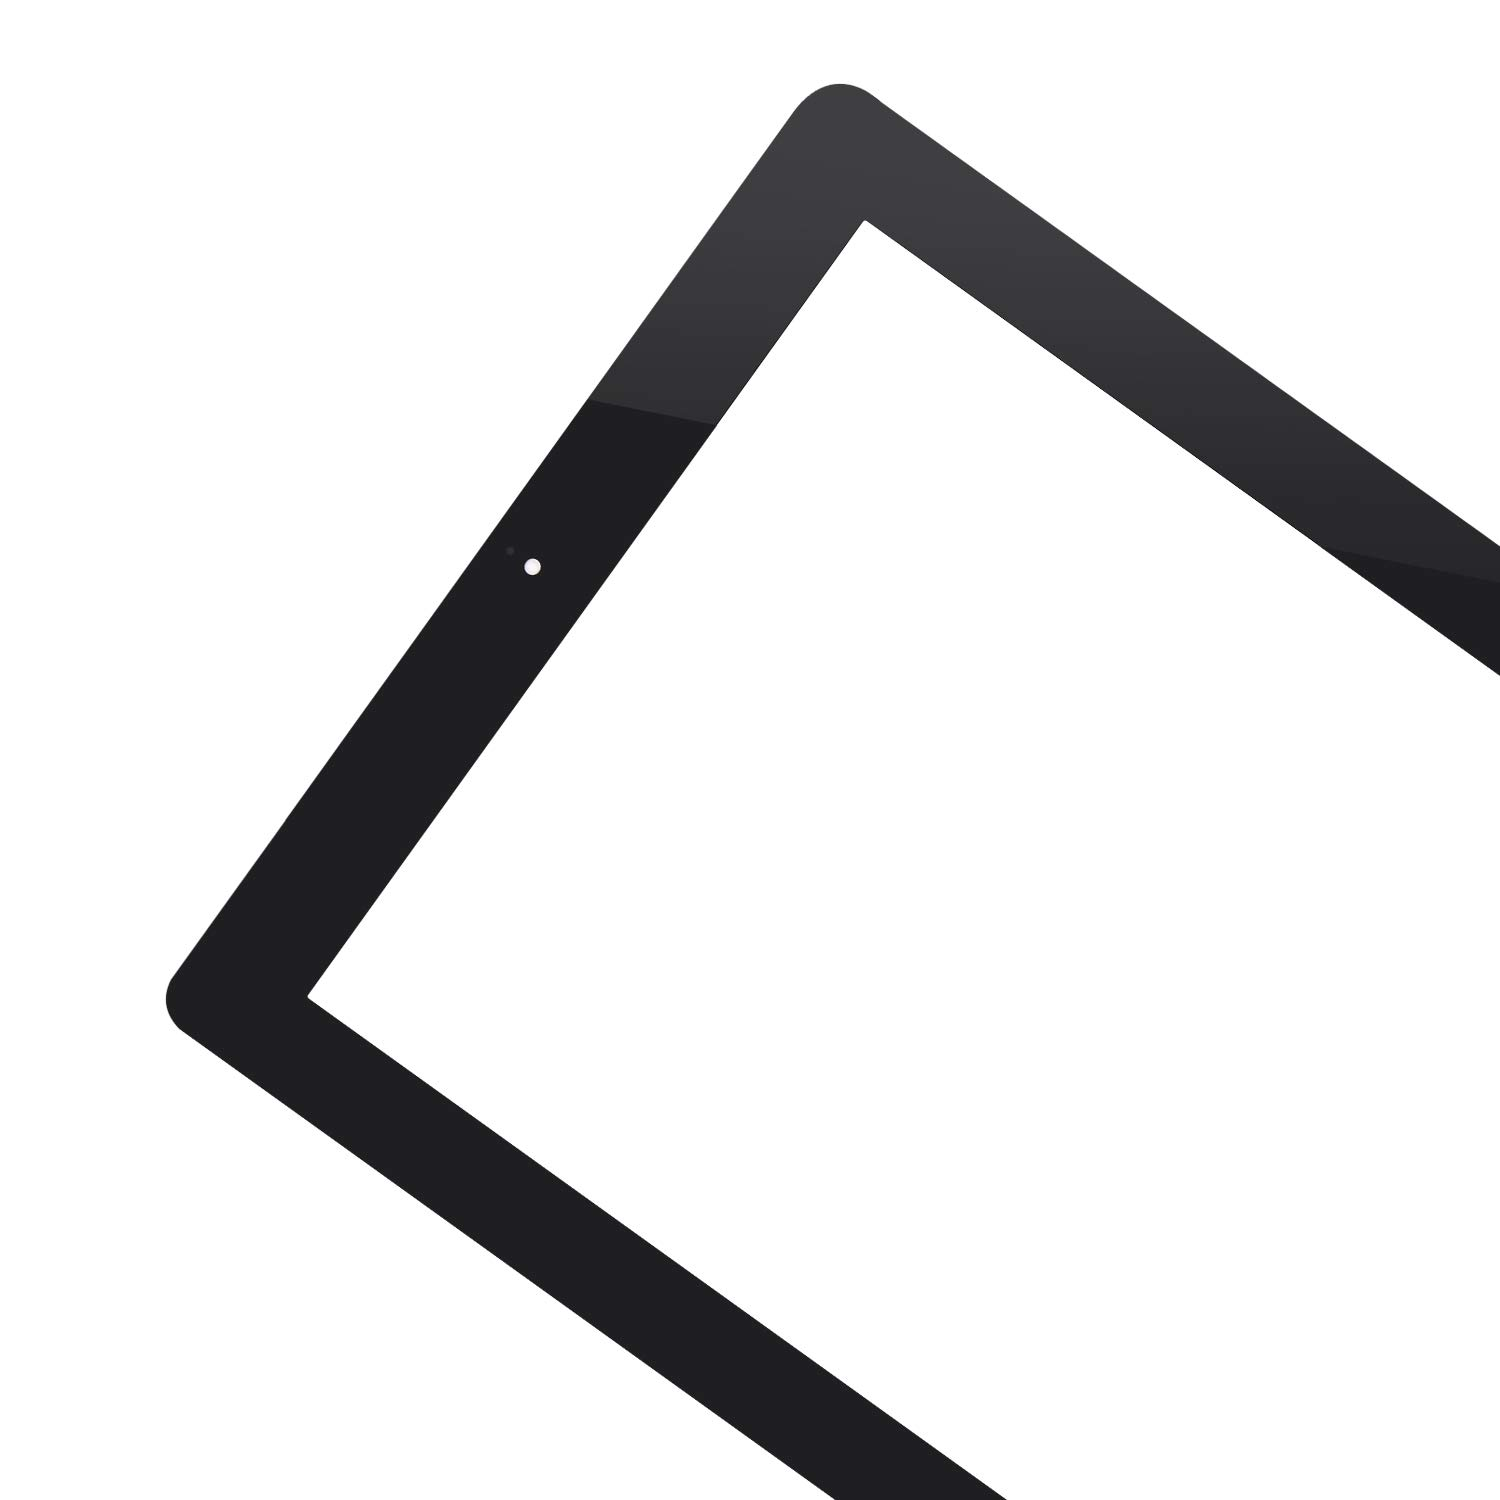 for iPad 2 Touch Screen Replacement A1397 A1395 A1396 Touch Digitizer Glass Parts Home Button Middle Frame Bezel Cameral Holder Pre-Installed Adhesive Black